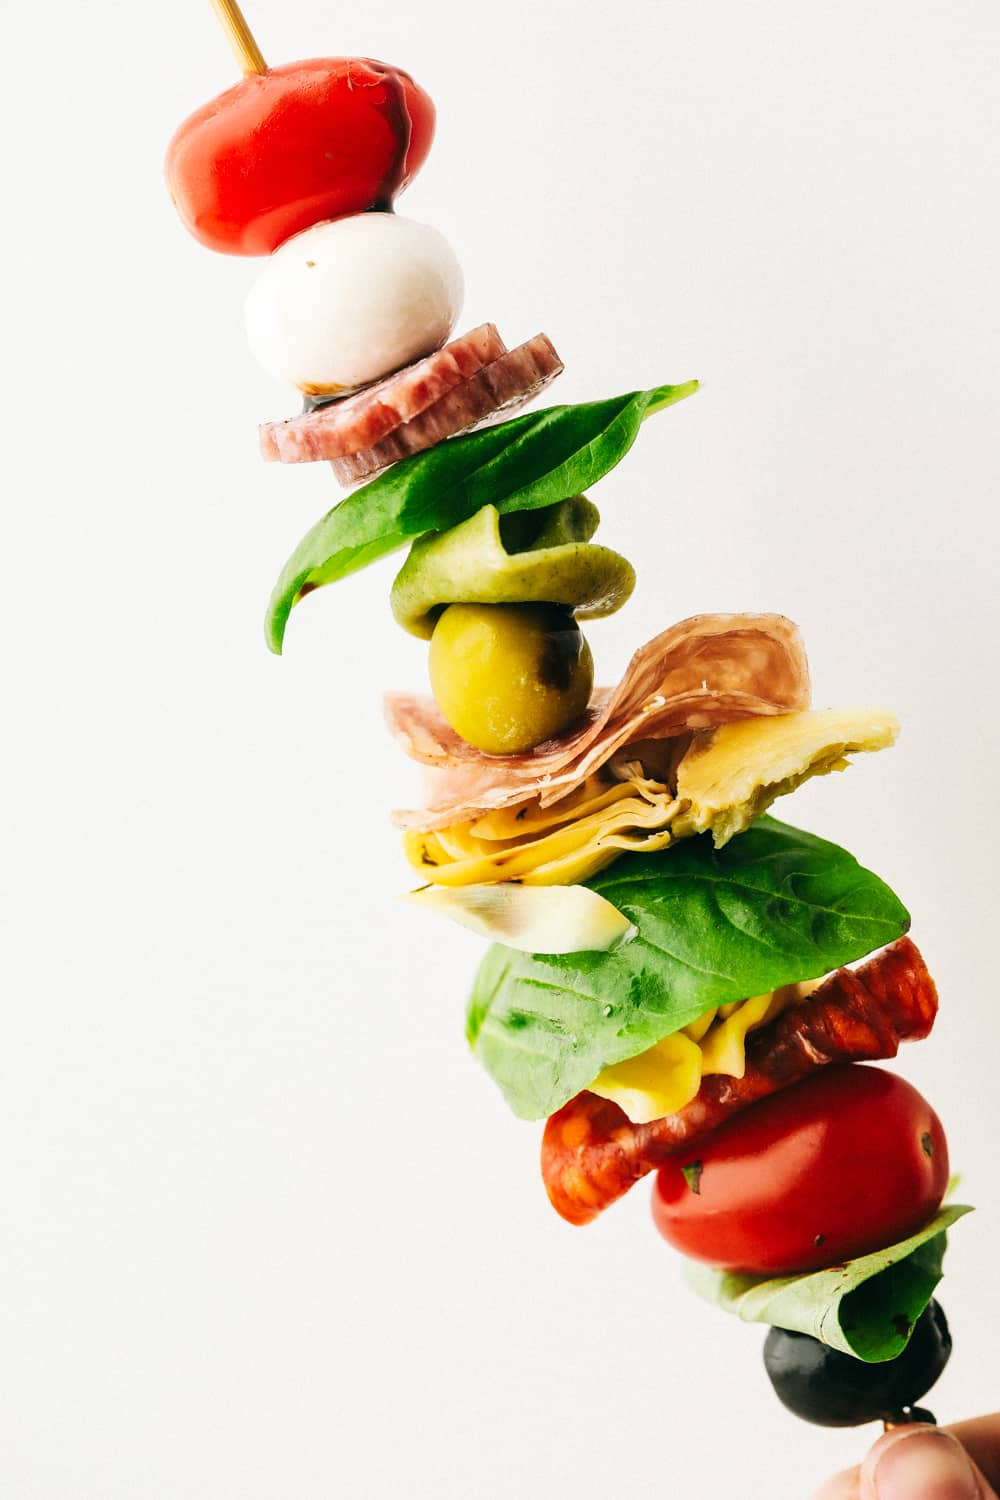 Up close look at an antipasto skewer layered with ingredients.